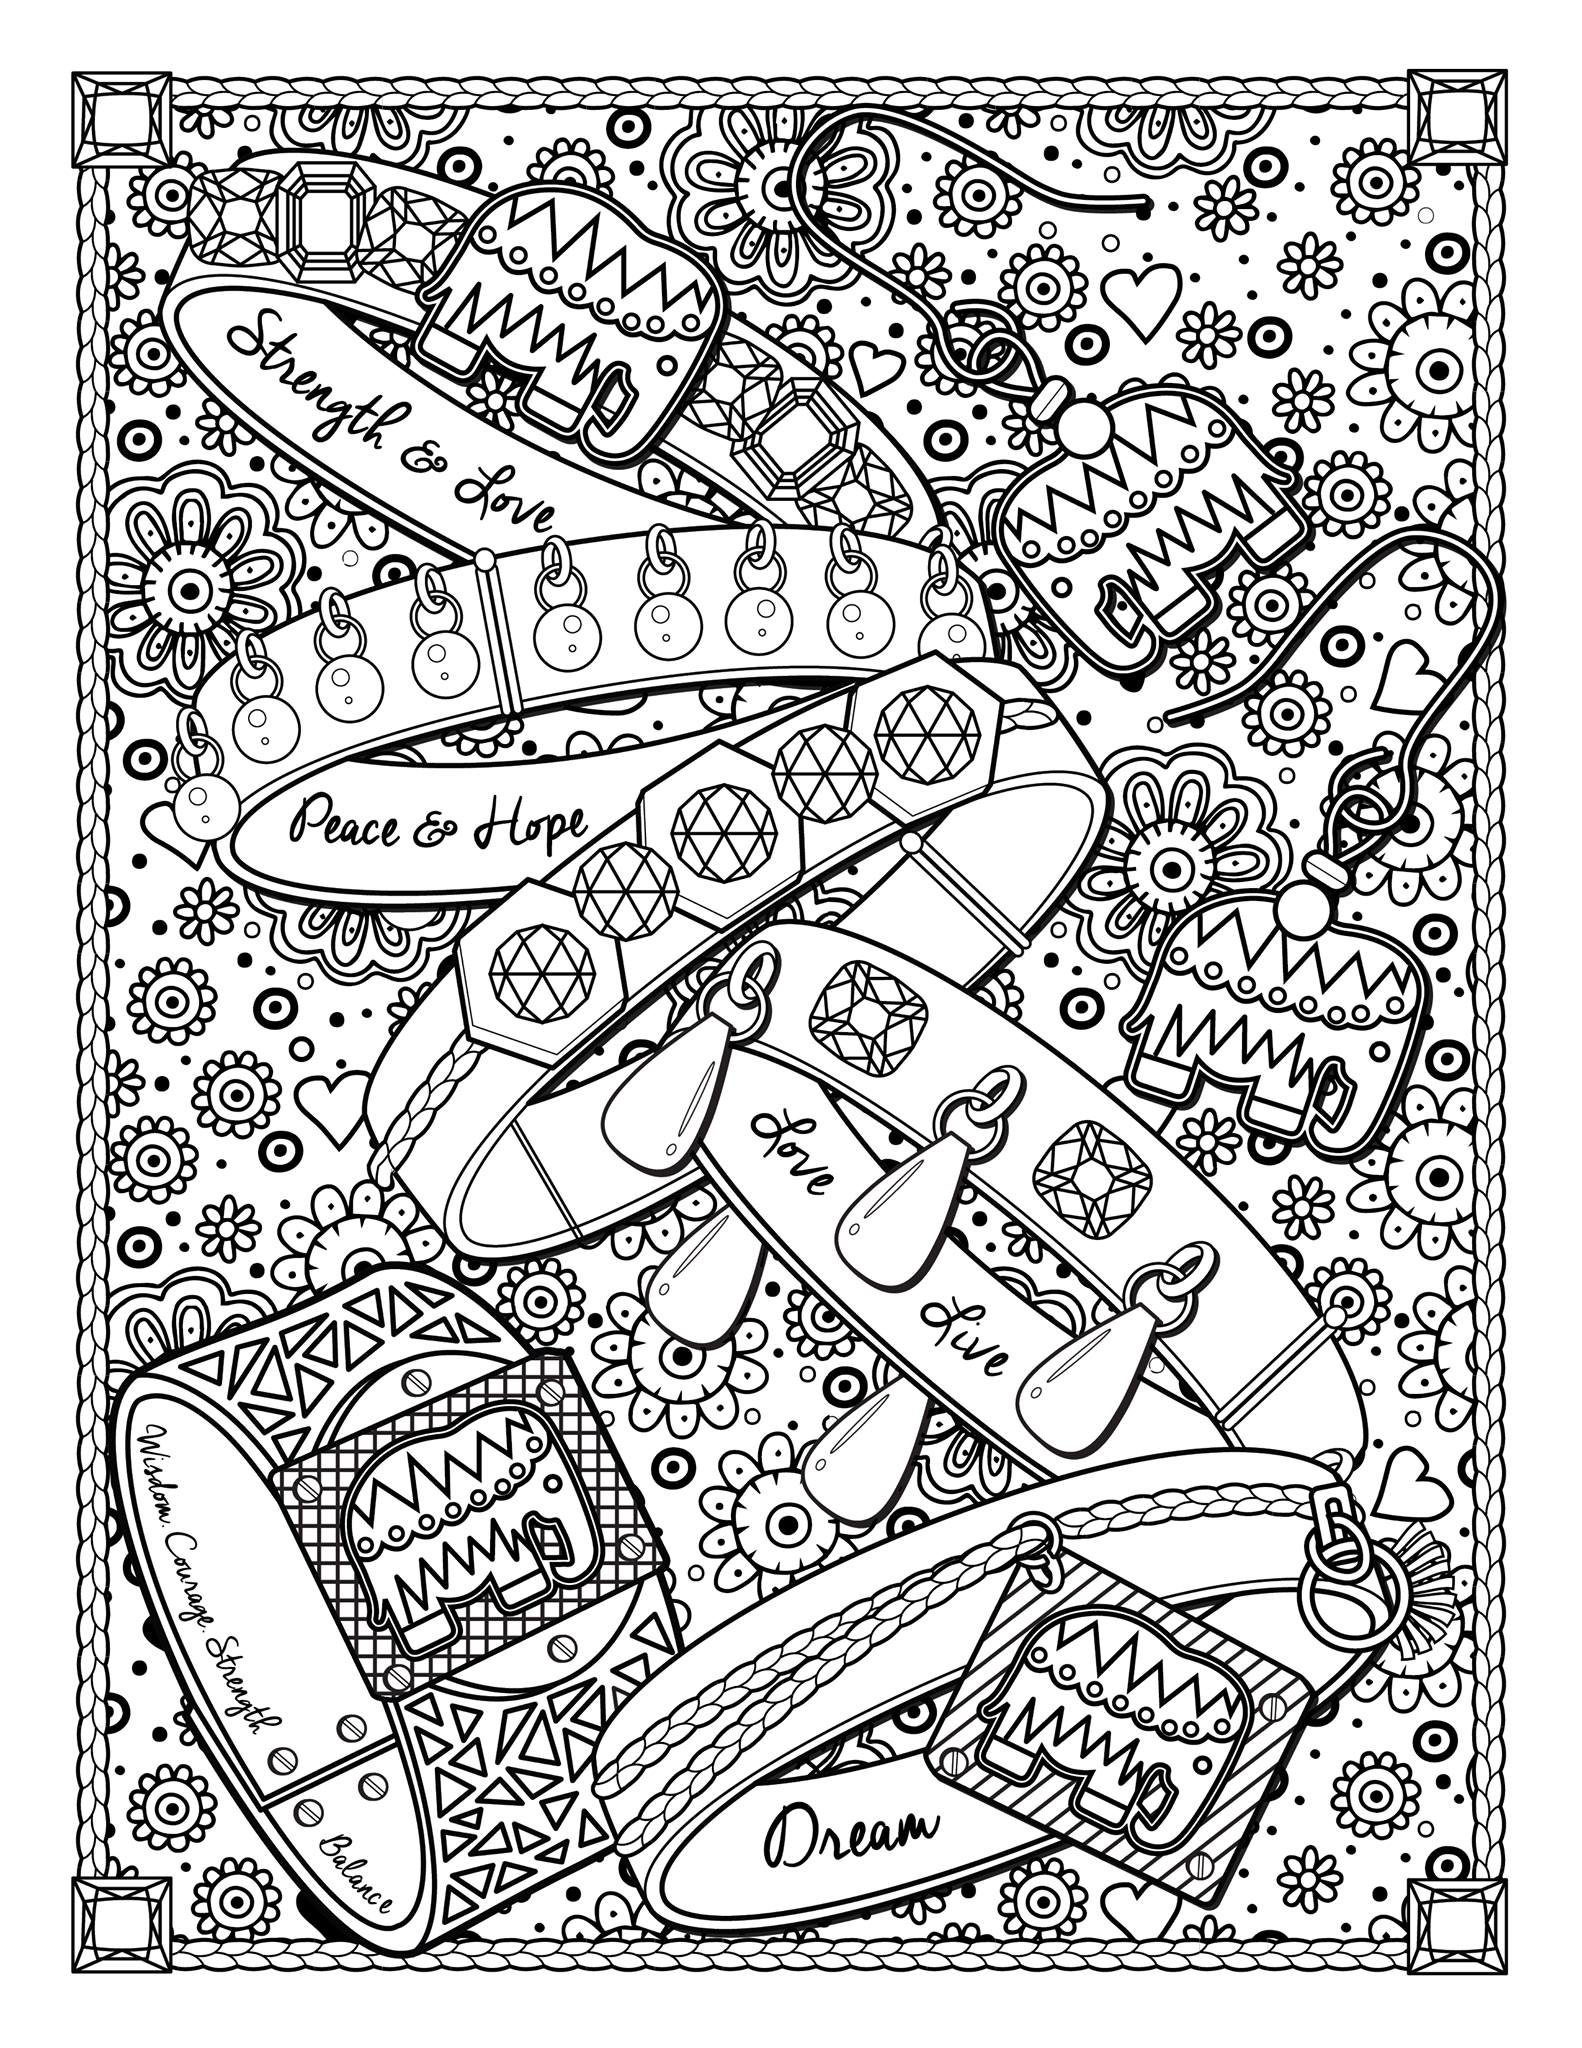 'Dream jewels' : A page from 'The Best Jewelry adult coloring book', available here